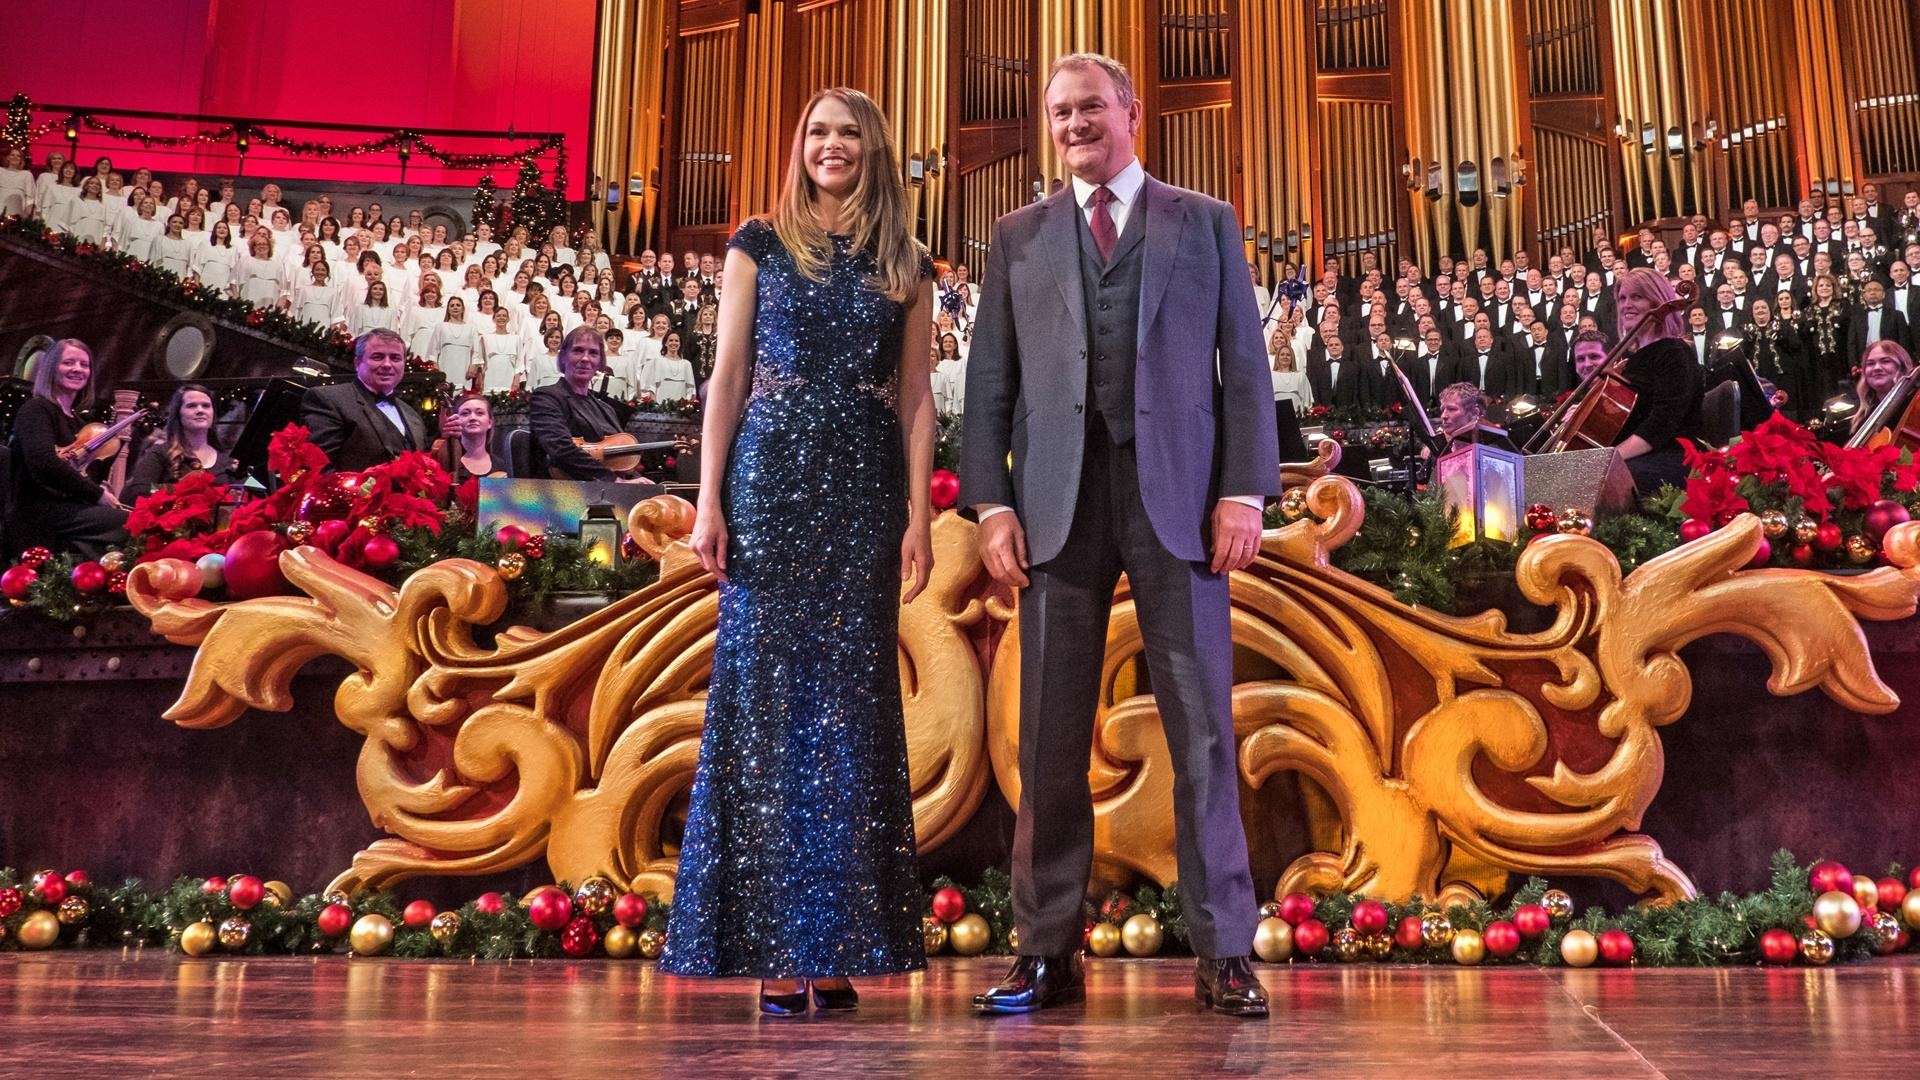 With the large organ in the background, Mack Wilberg stands among The Orchestra at Temple Square and The Tabernacle Choir.